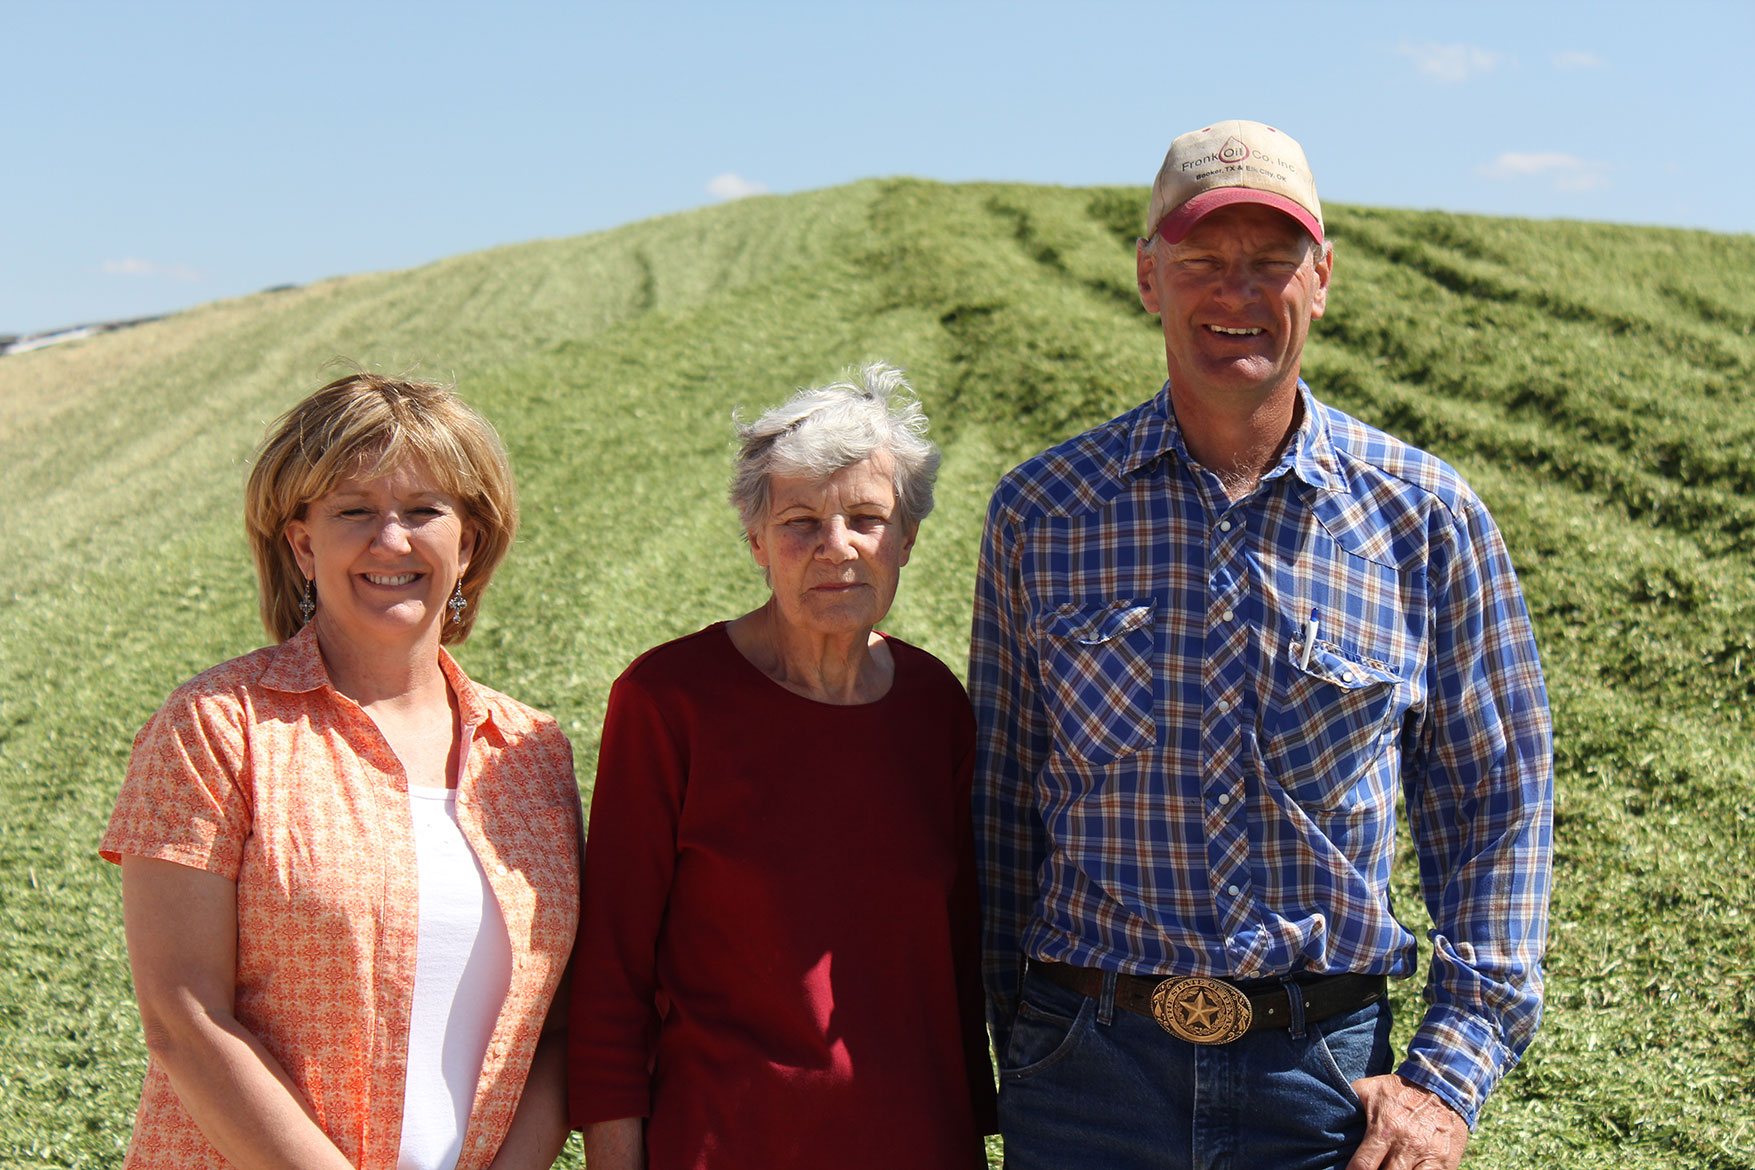 The Mellema family poses in front of the silage (chopped up corn plant) pile at their dairy.